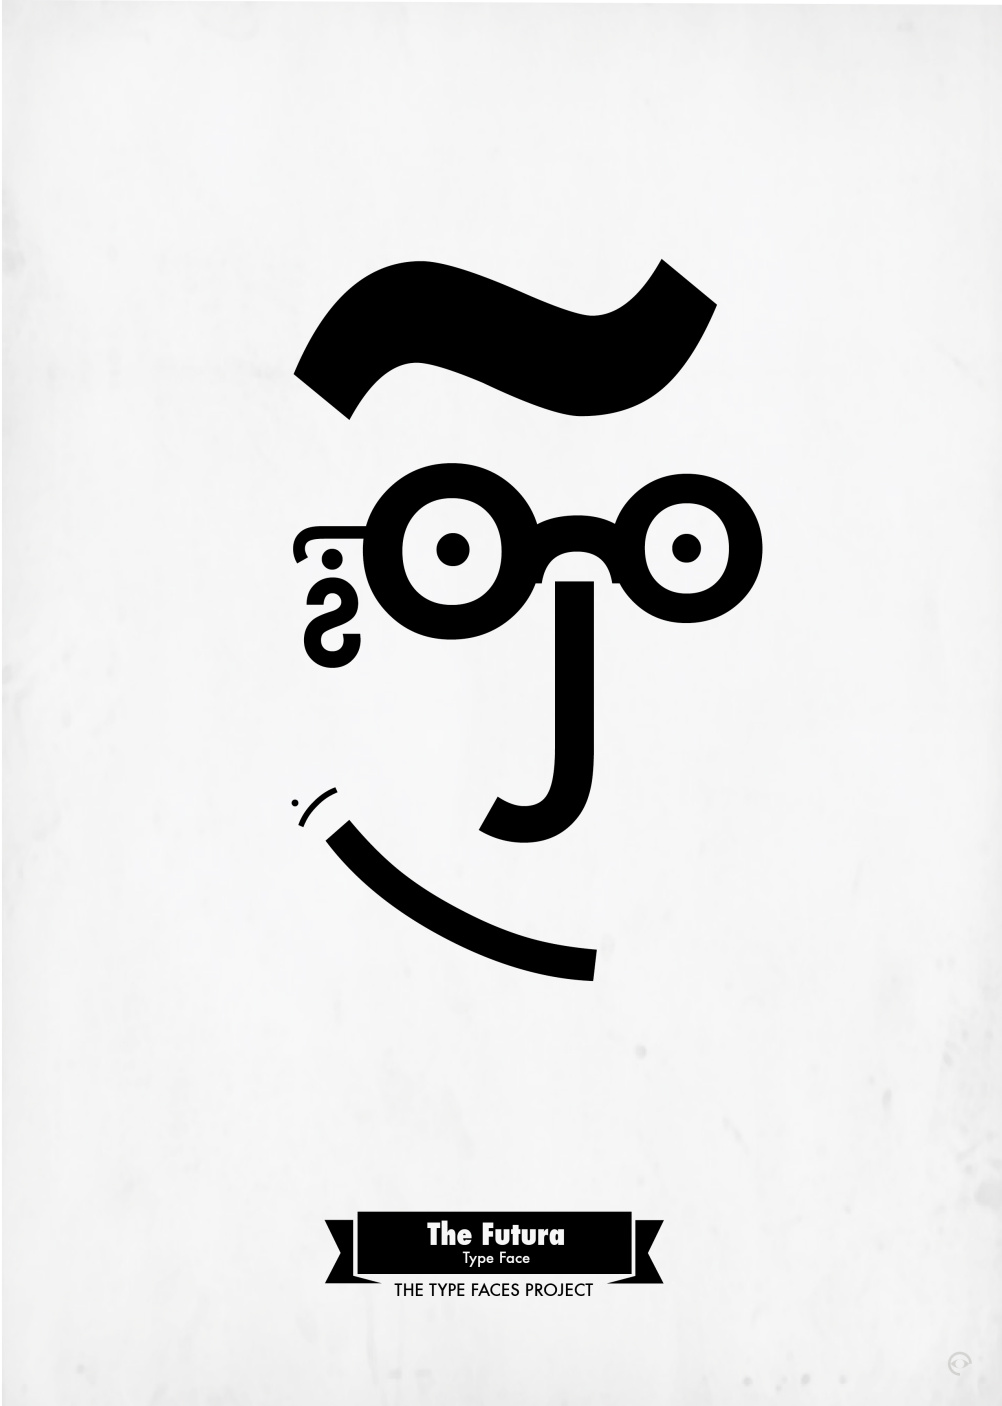 Type Face by Tiago Pinto